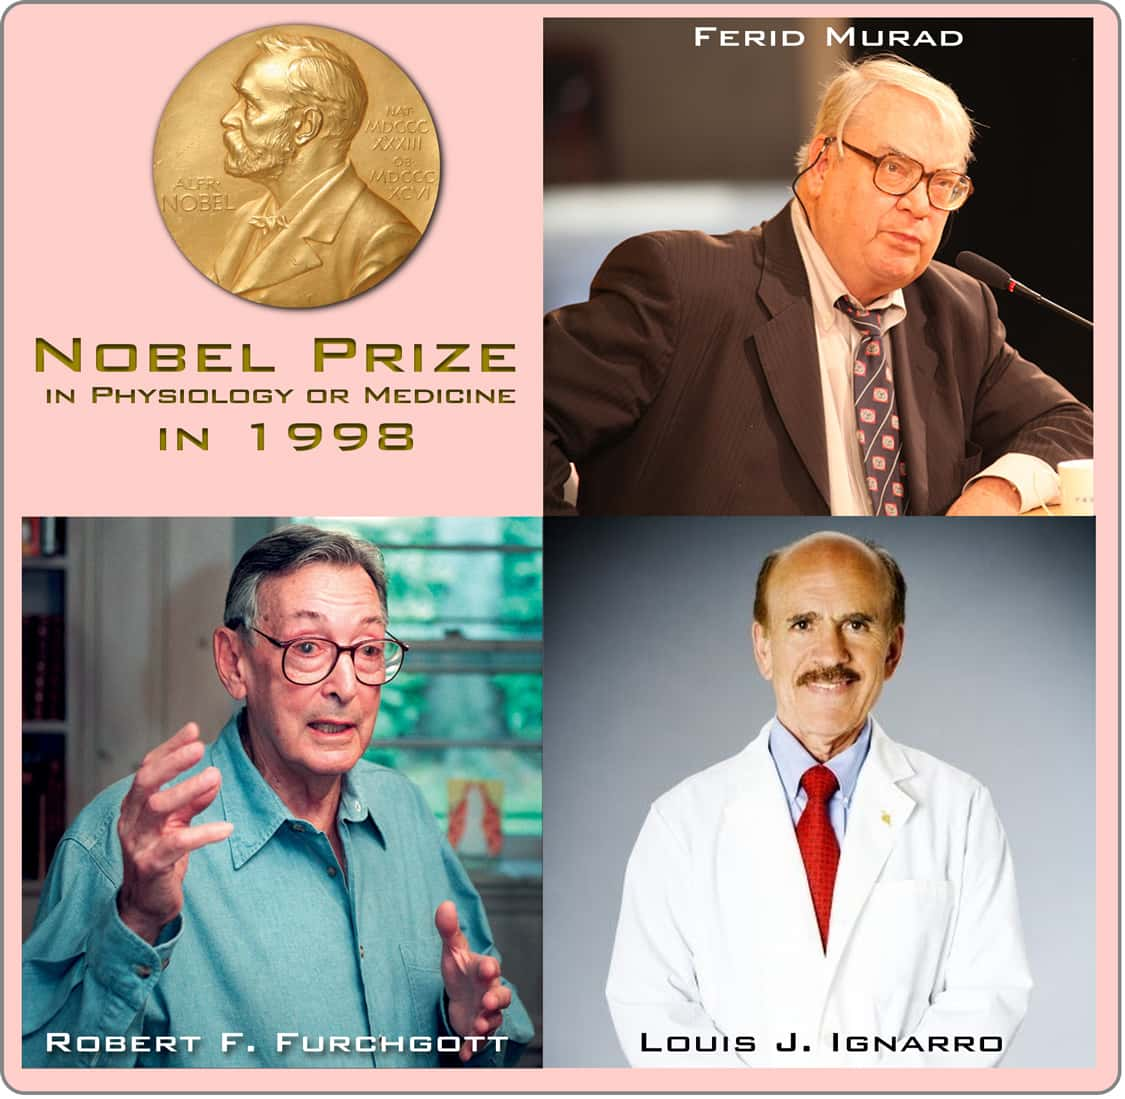 Nobel Prize winners in 1998 in Physiology or Medicine